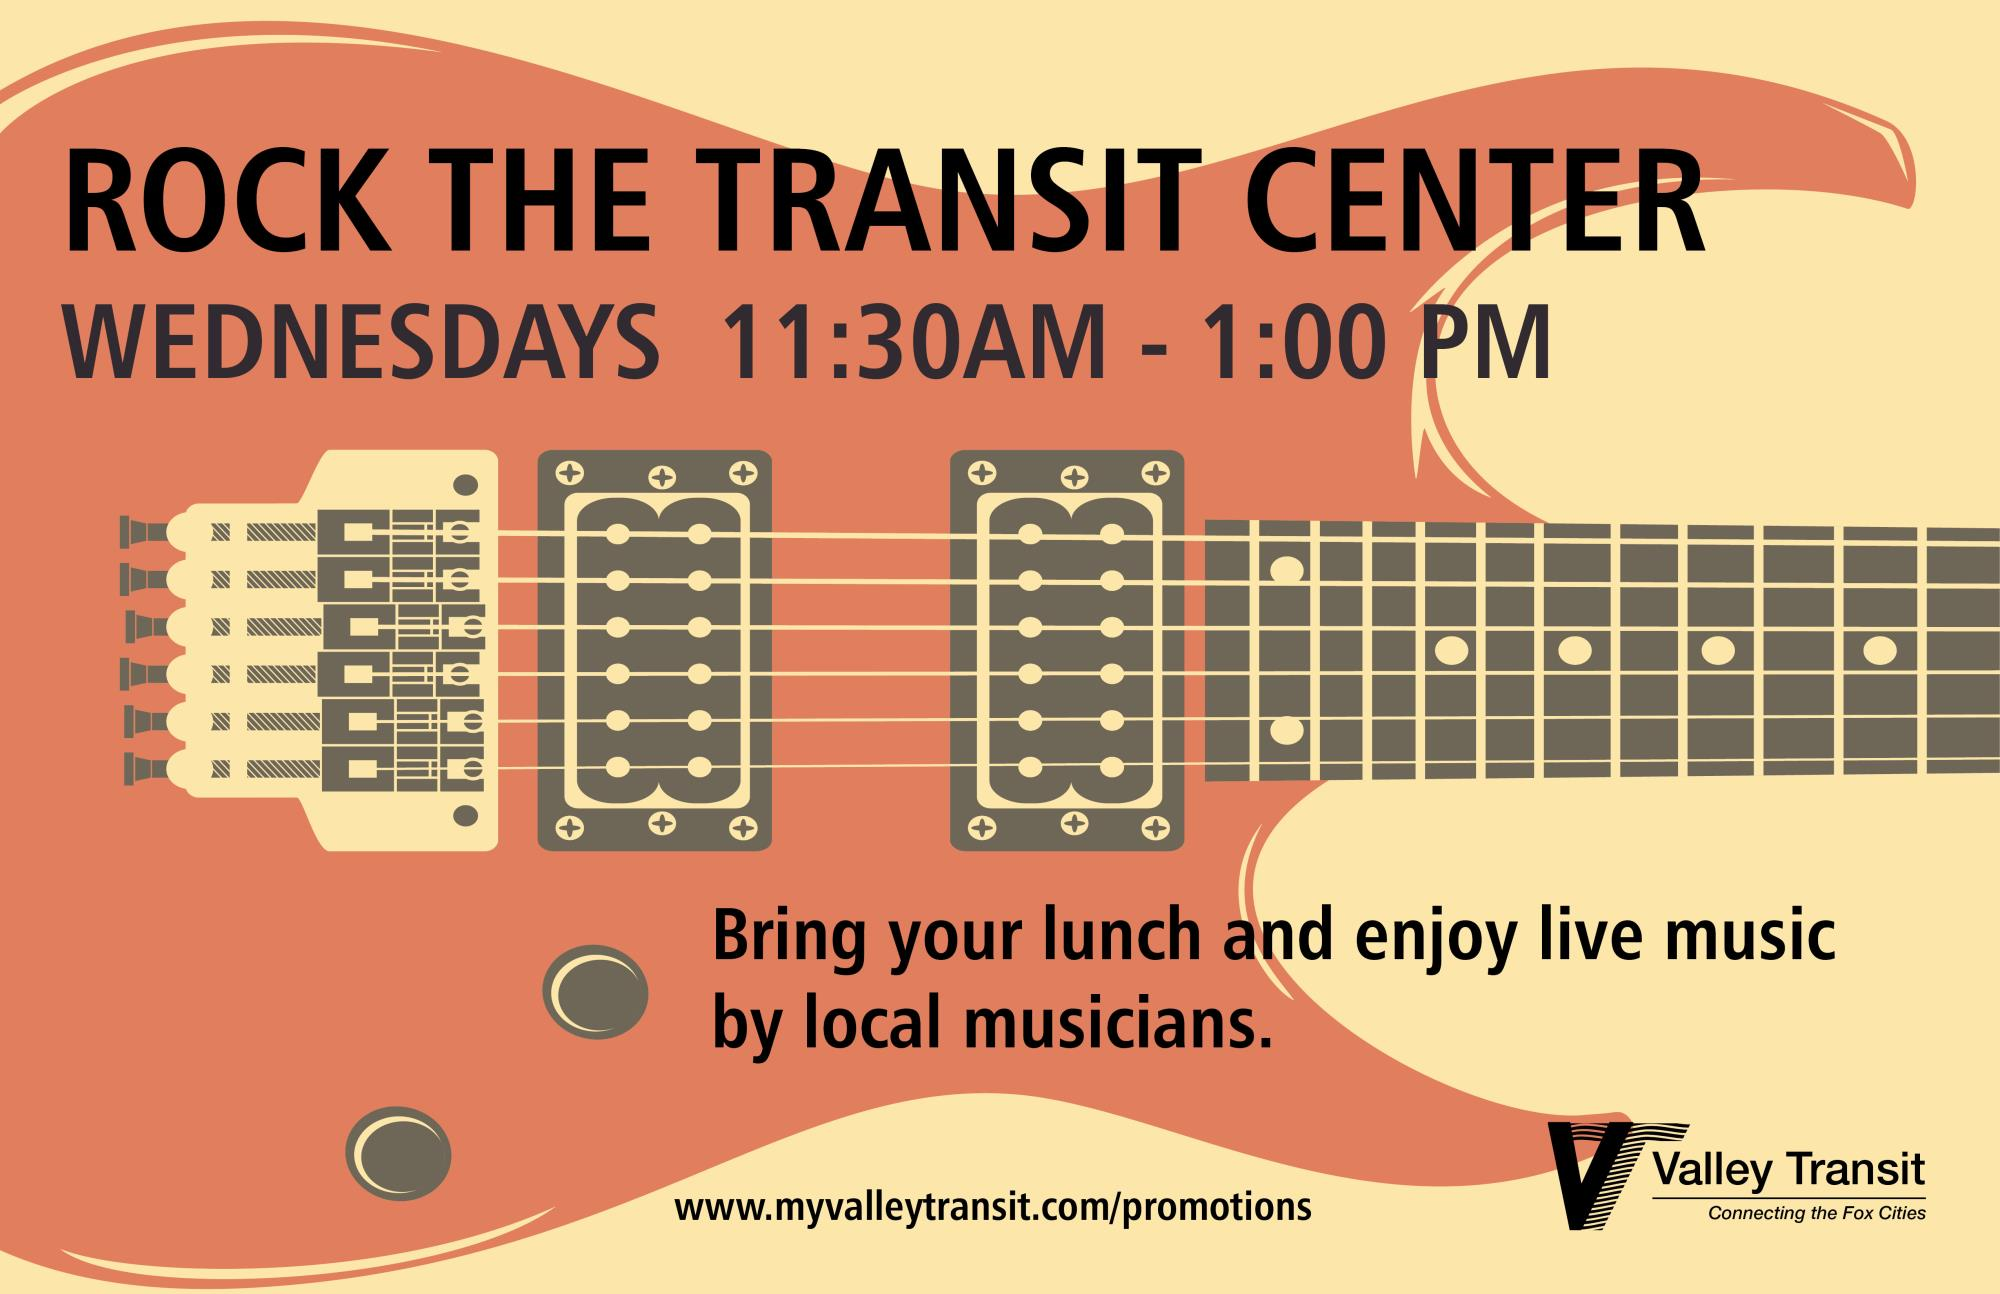 Rock the Transit Center